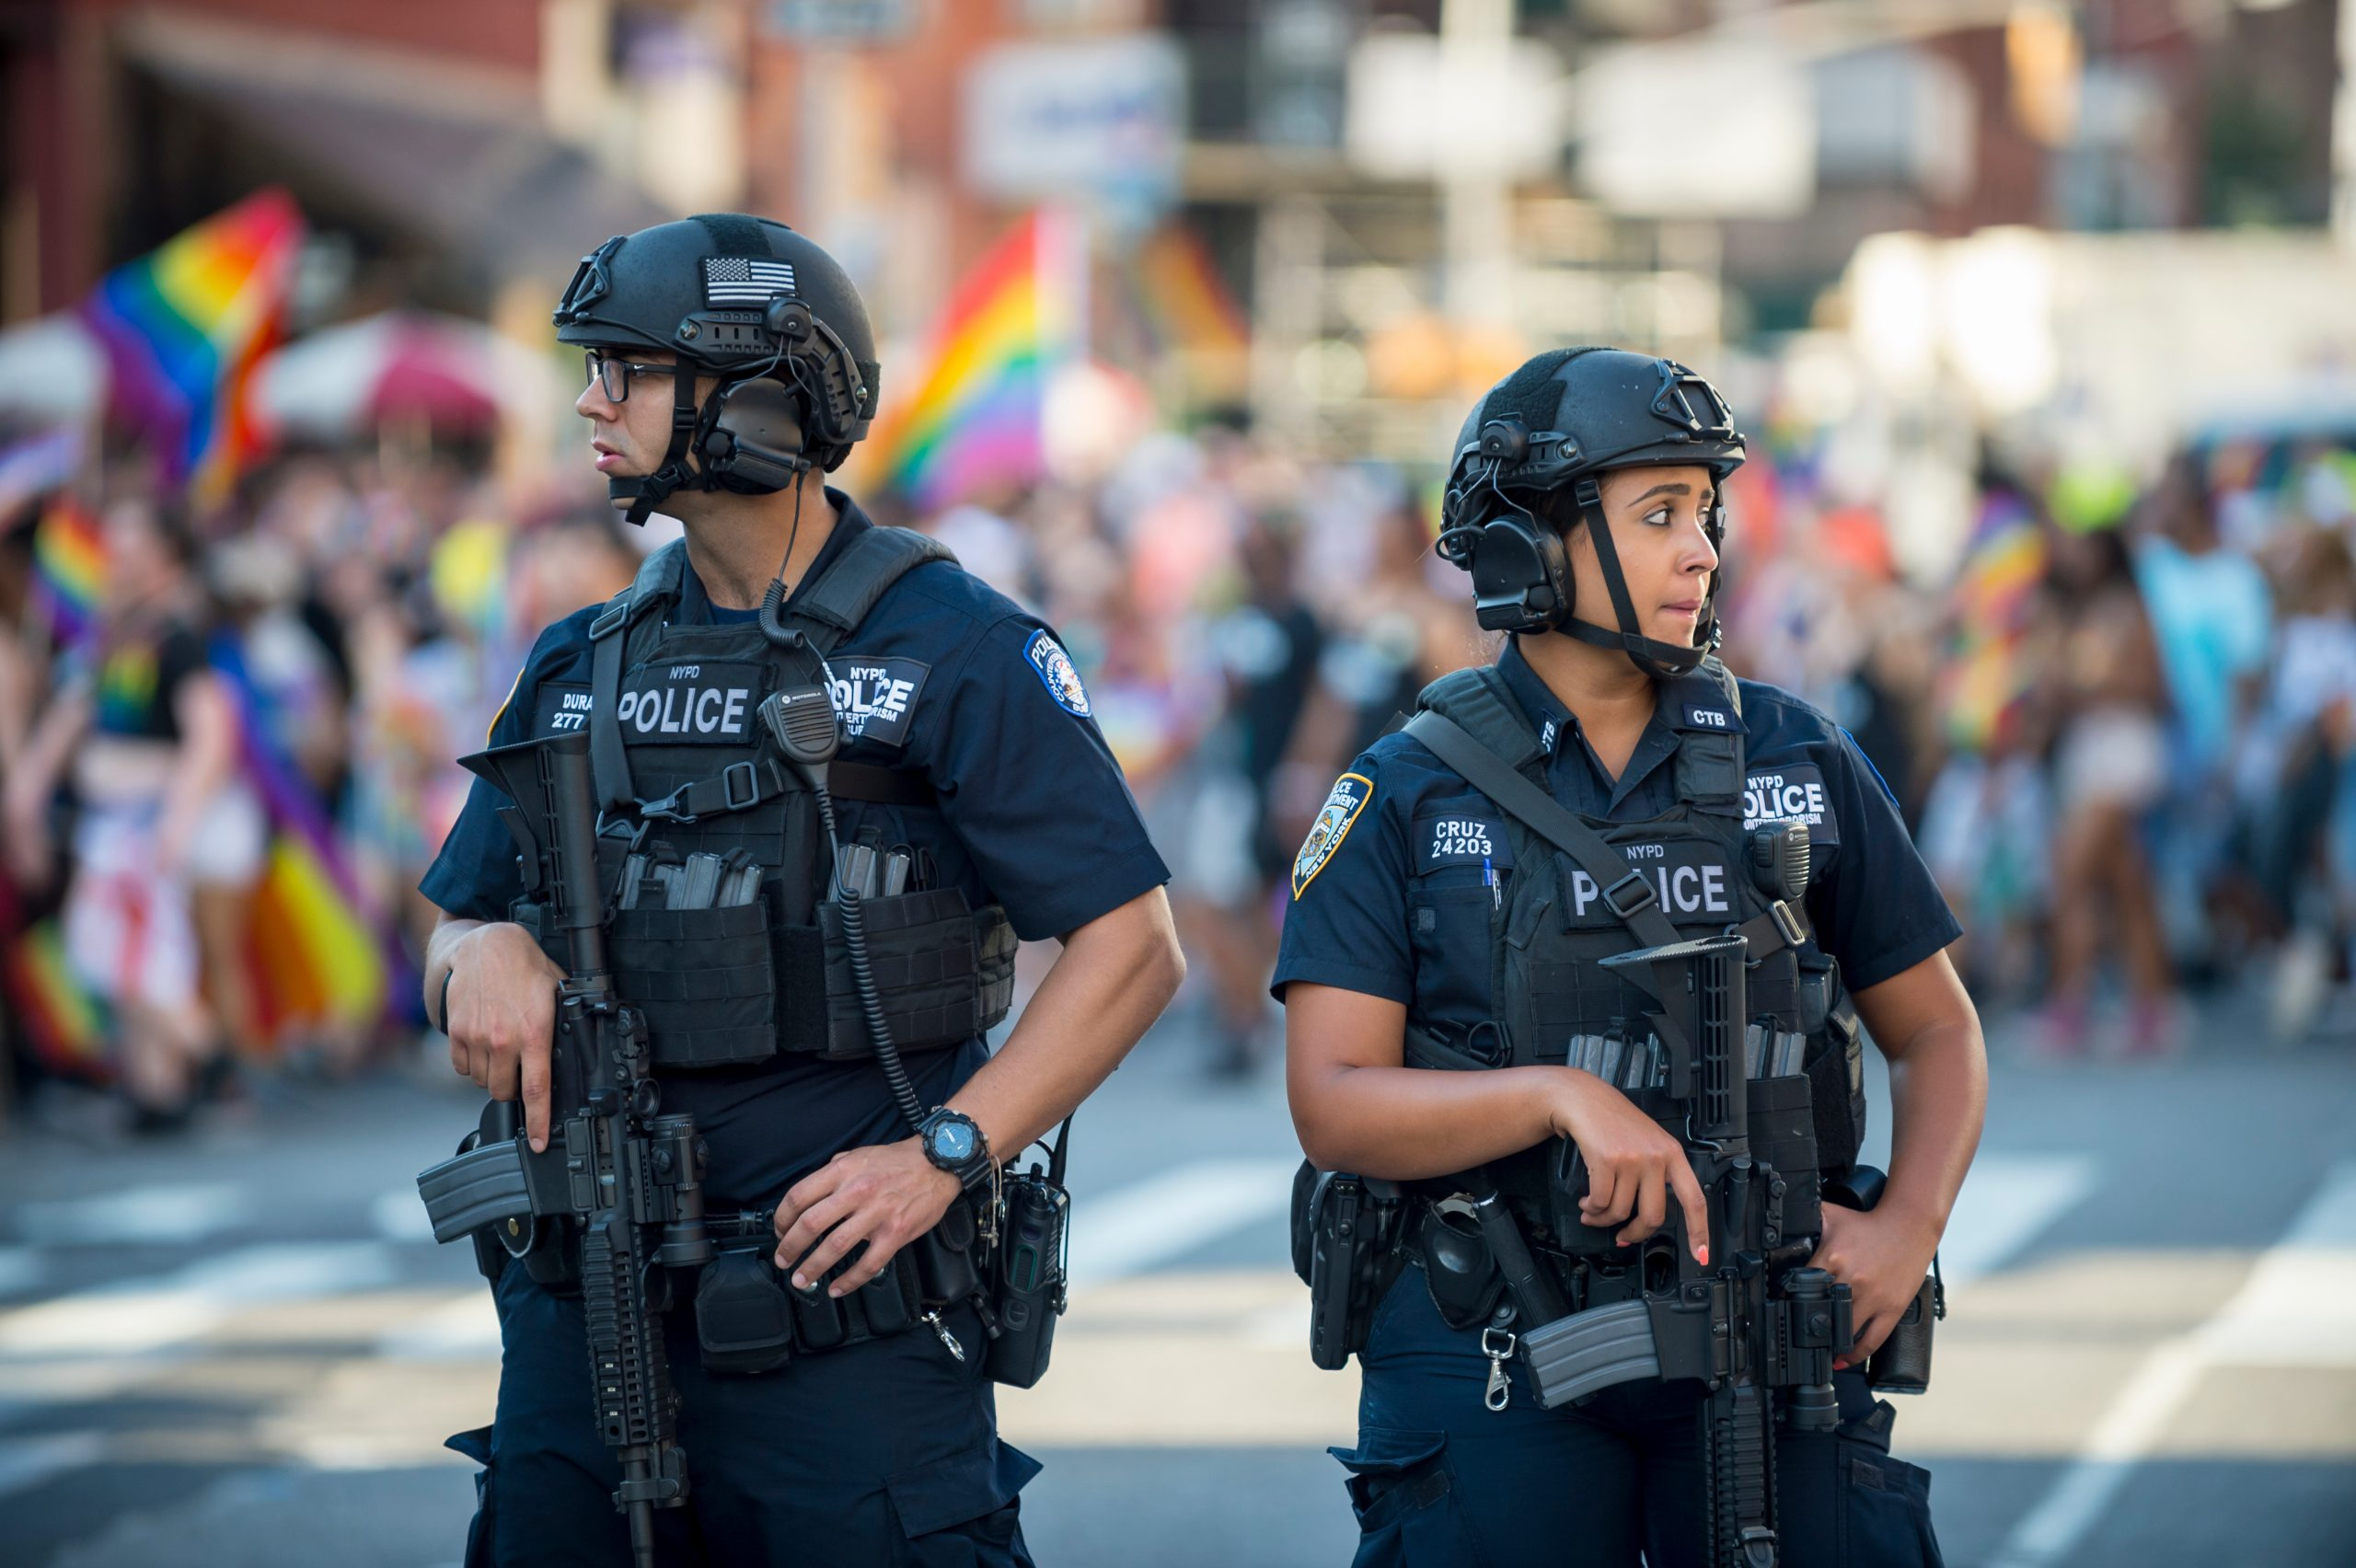 JUNE 25, 2017: NYPD police officers stand with hands on their weapons, providing security on the sidelines of the annual Gay Pride parade as it passes through Greenwich Village.